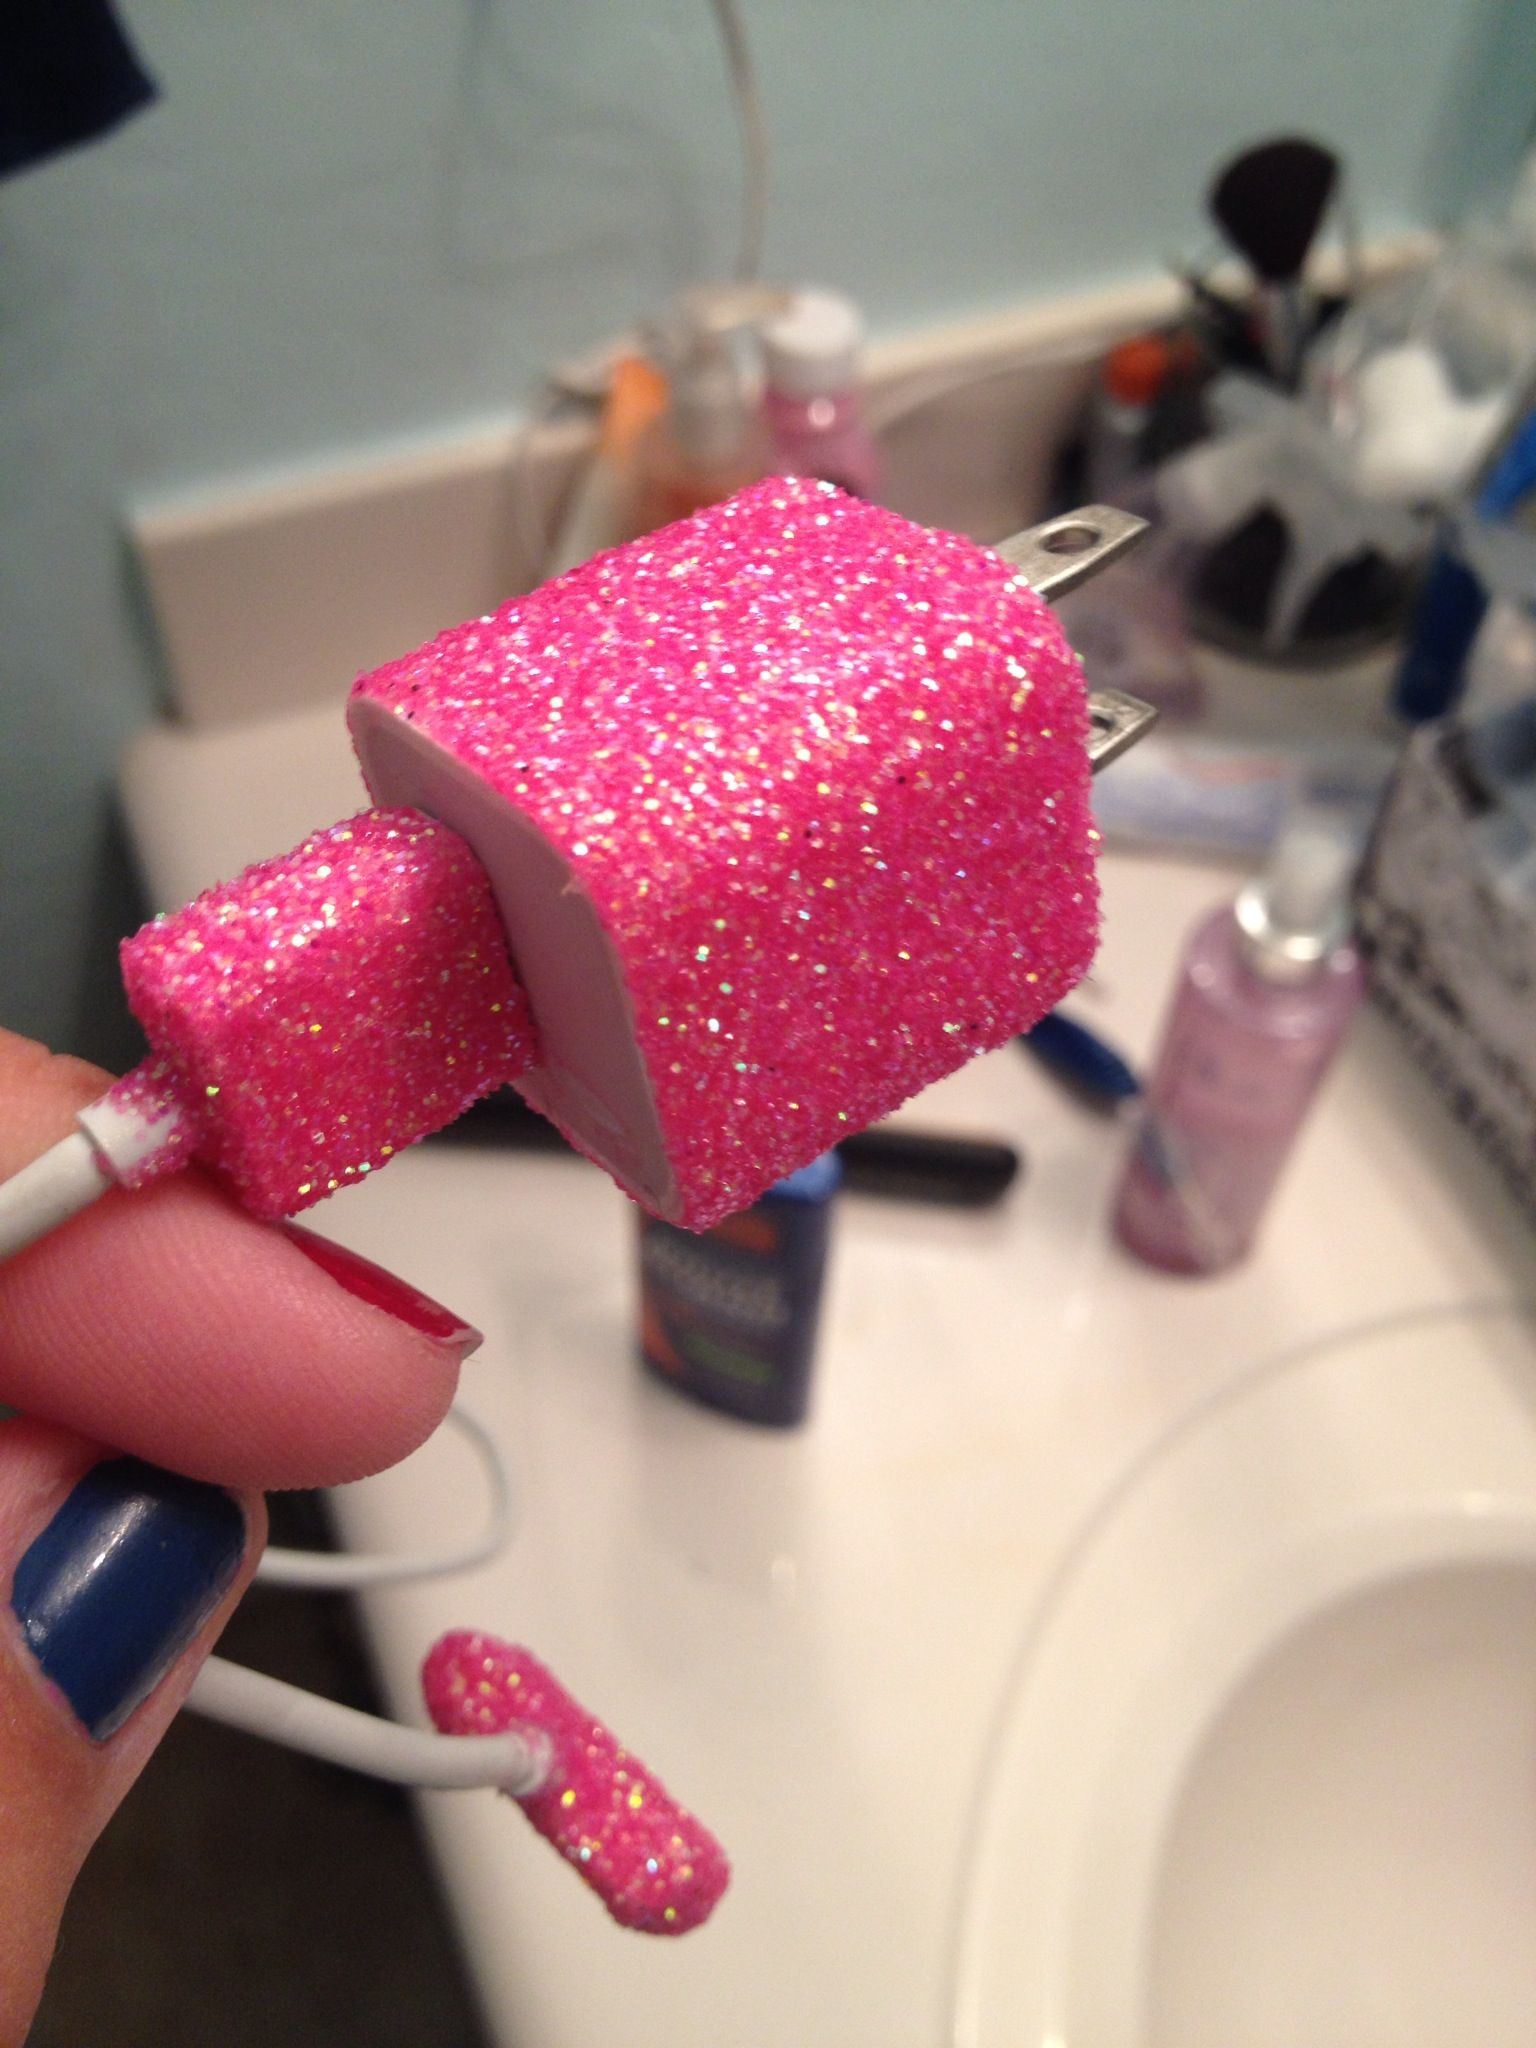 Glittered iPhone charger. All you need is modge podge and